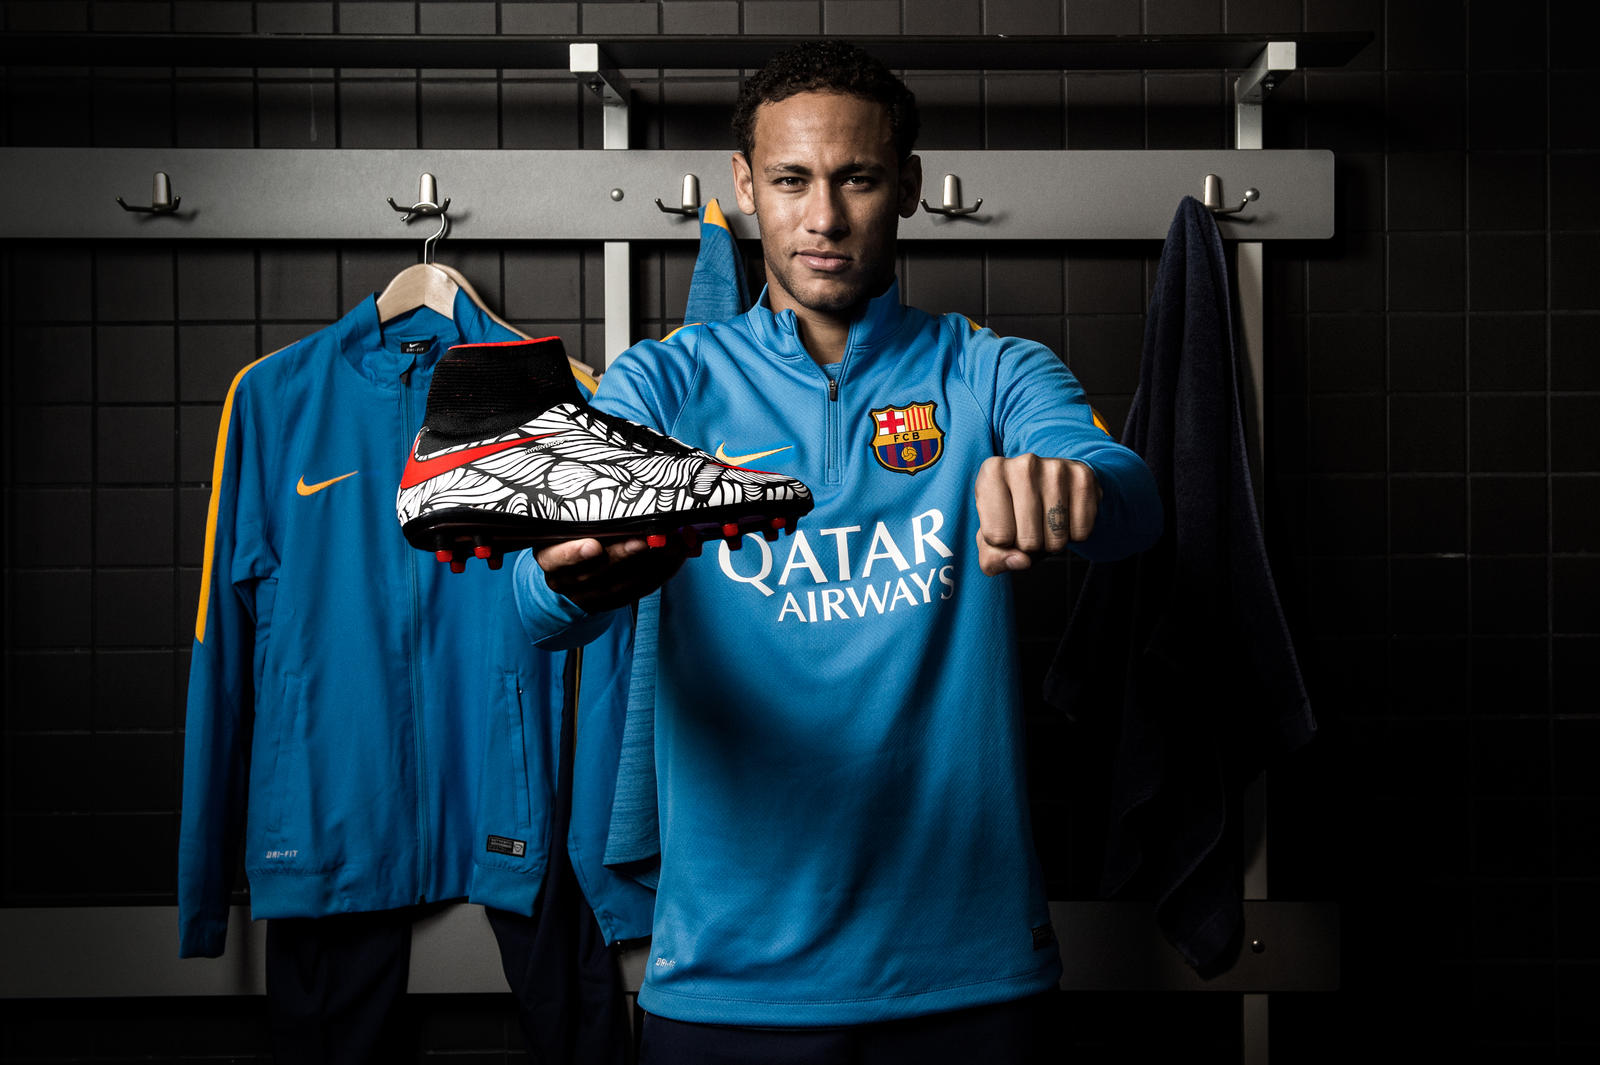 Quot Ousadia Alegria Quot Collection For Neymar Jr Nike News